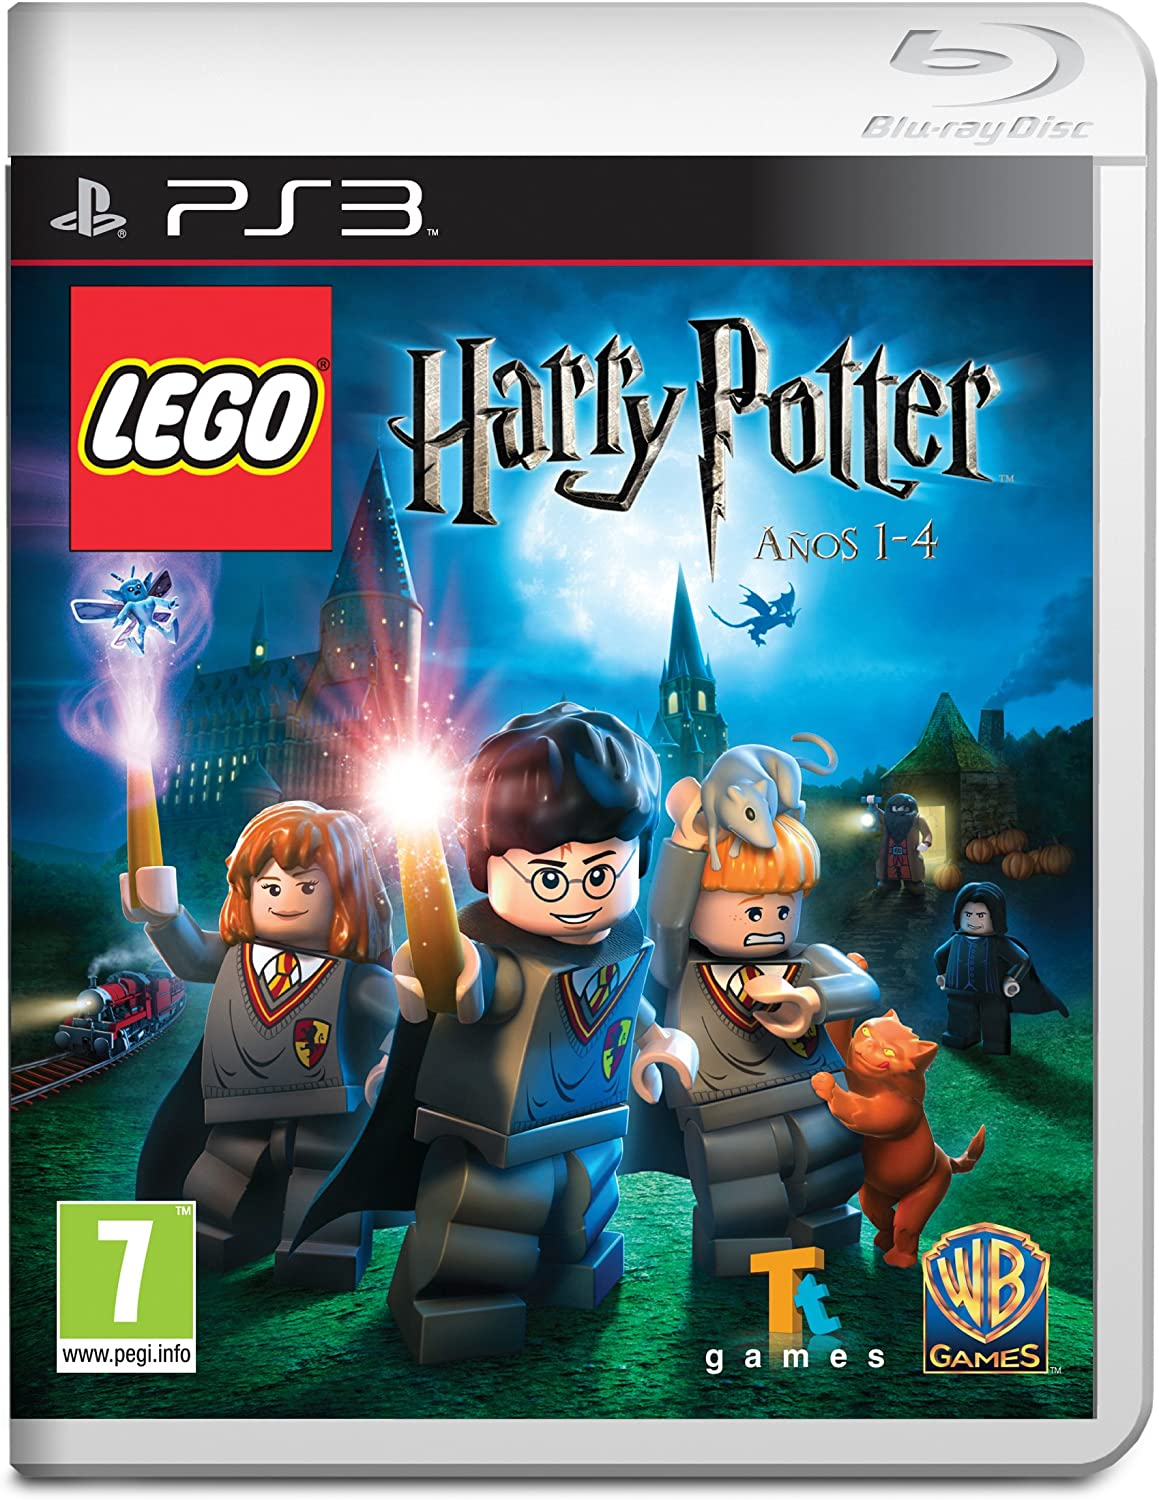 LEGO Harry Potter - Años 1-4 Special Edition